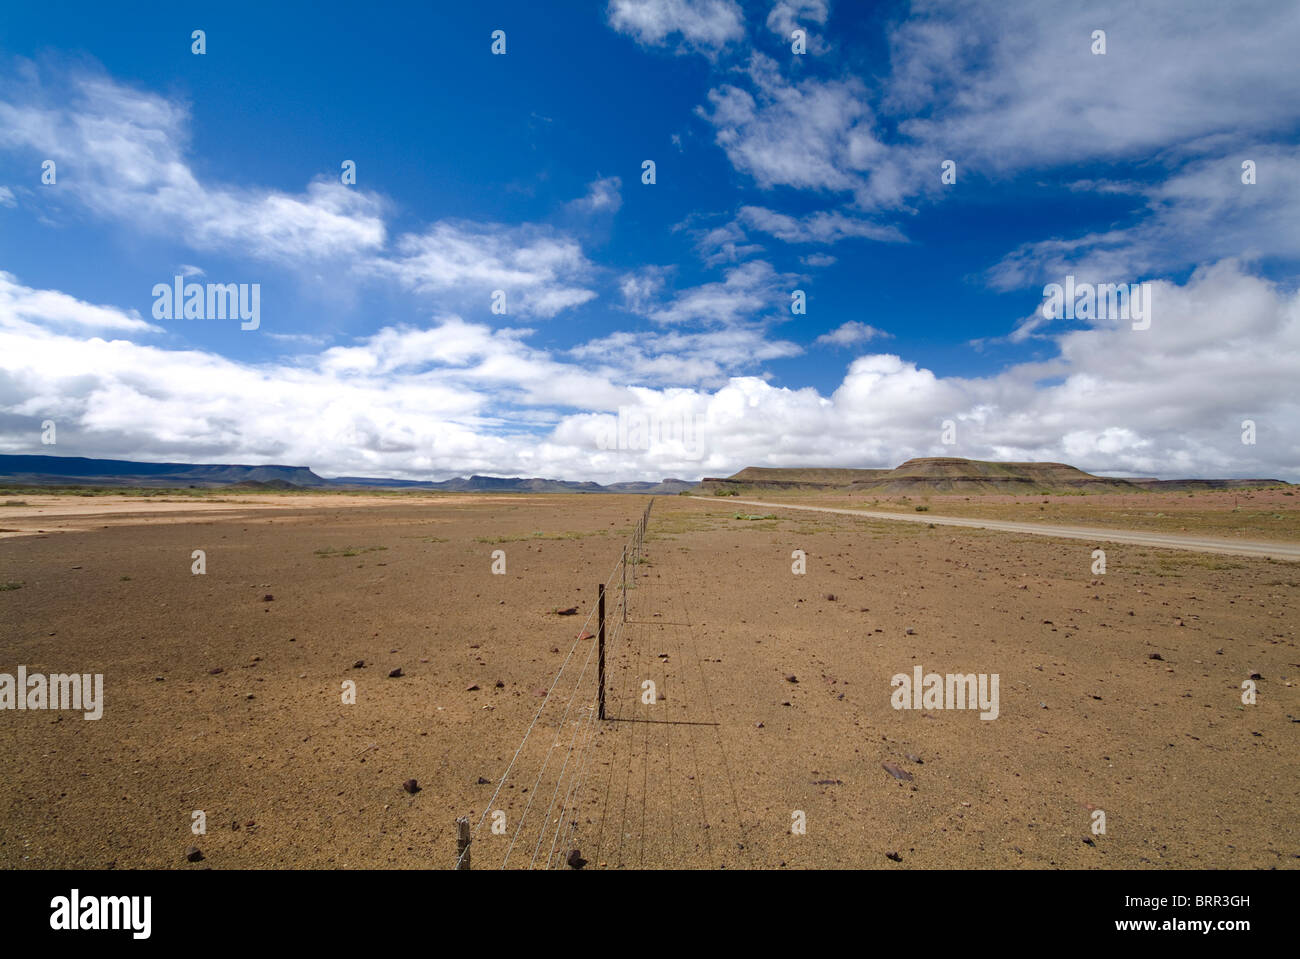 Fence line in a flat arid environment stretching into the distance - Stock Image